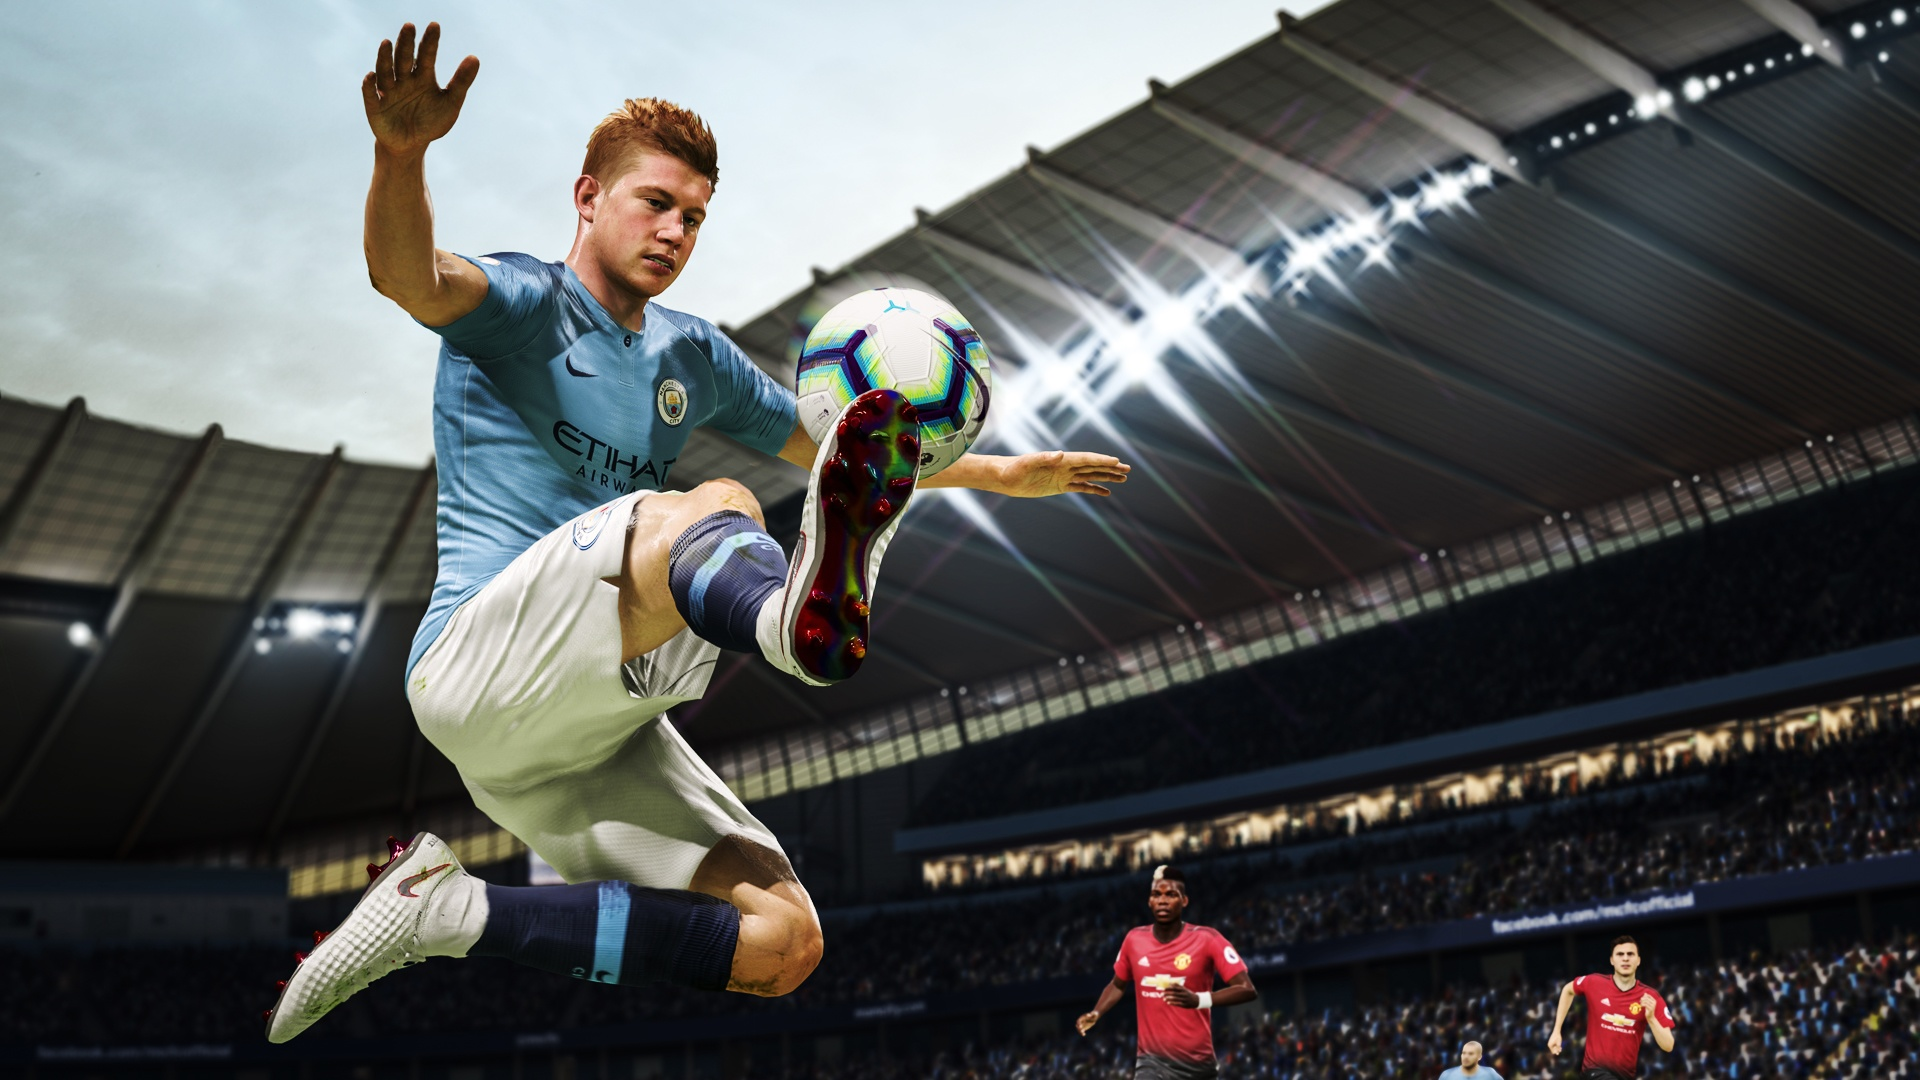 ea sports desvela por fin la portada definitiva de fifa 19. Black Bedroom Furniture Sets. Home Design Ideas